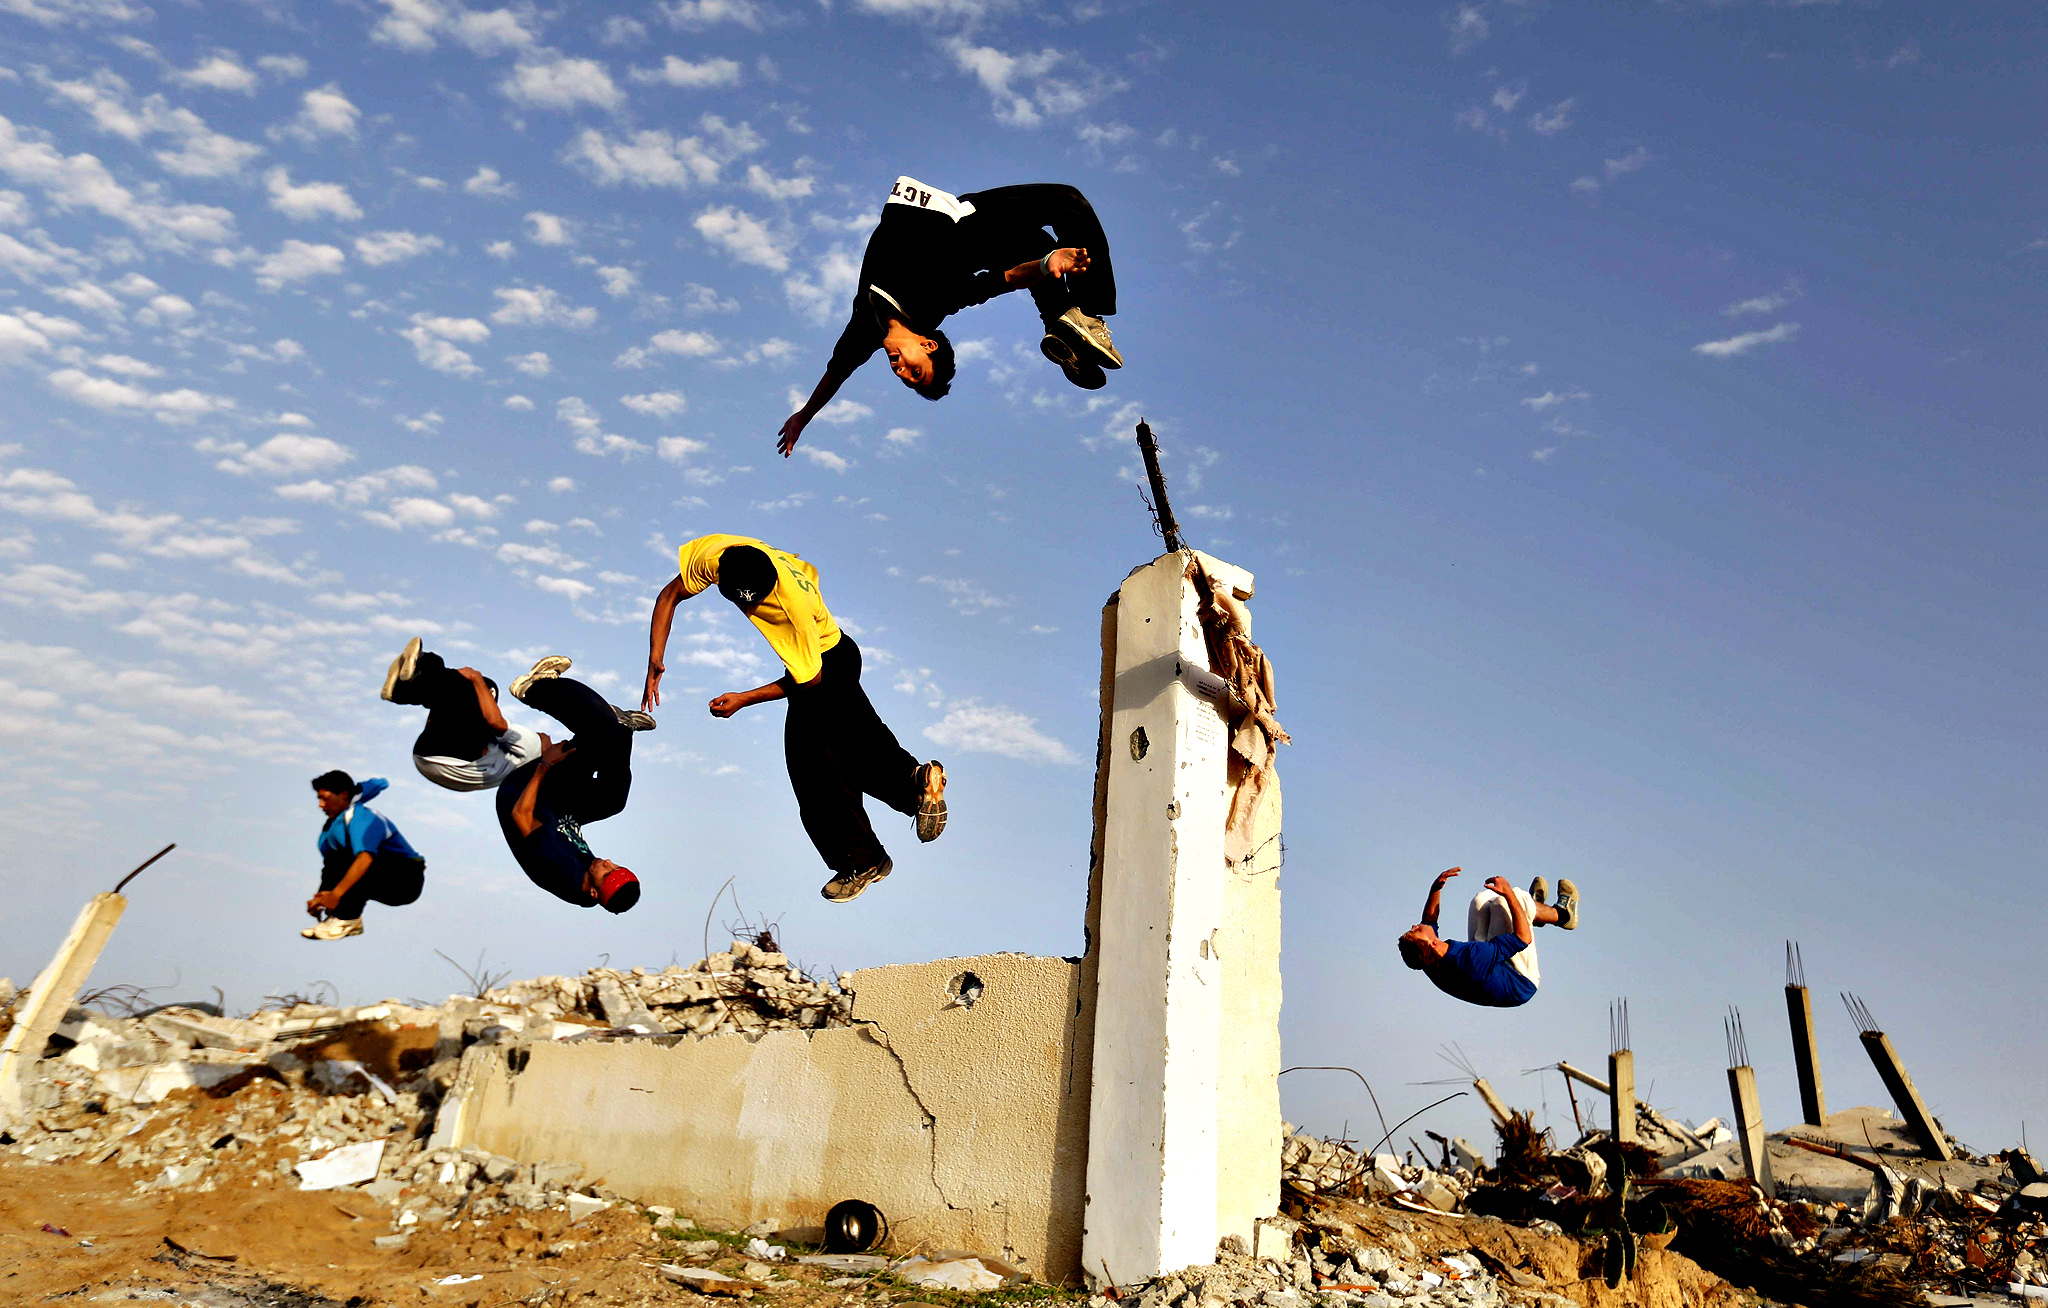 Palestinian youths practice their Parkour skills over the ruins of houses, which were destroyed during the 50-day Gaza war between Israel and Hamas-led militants in the Gaza Strip, on November 14, 2014, in Khan Yunis' Khuzaa neighbourhood in the southern Gaza Strip near the Israeli border. The 50-day war between Israel and Hamas militants killed at least 2,143 Palestinians, nearly 70 percent of them civilians, and 73 people on the Israeli side.